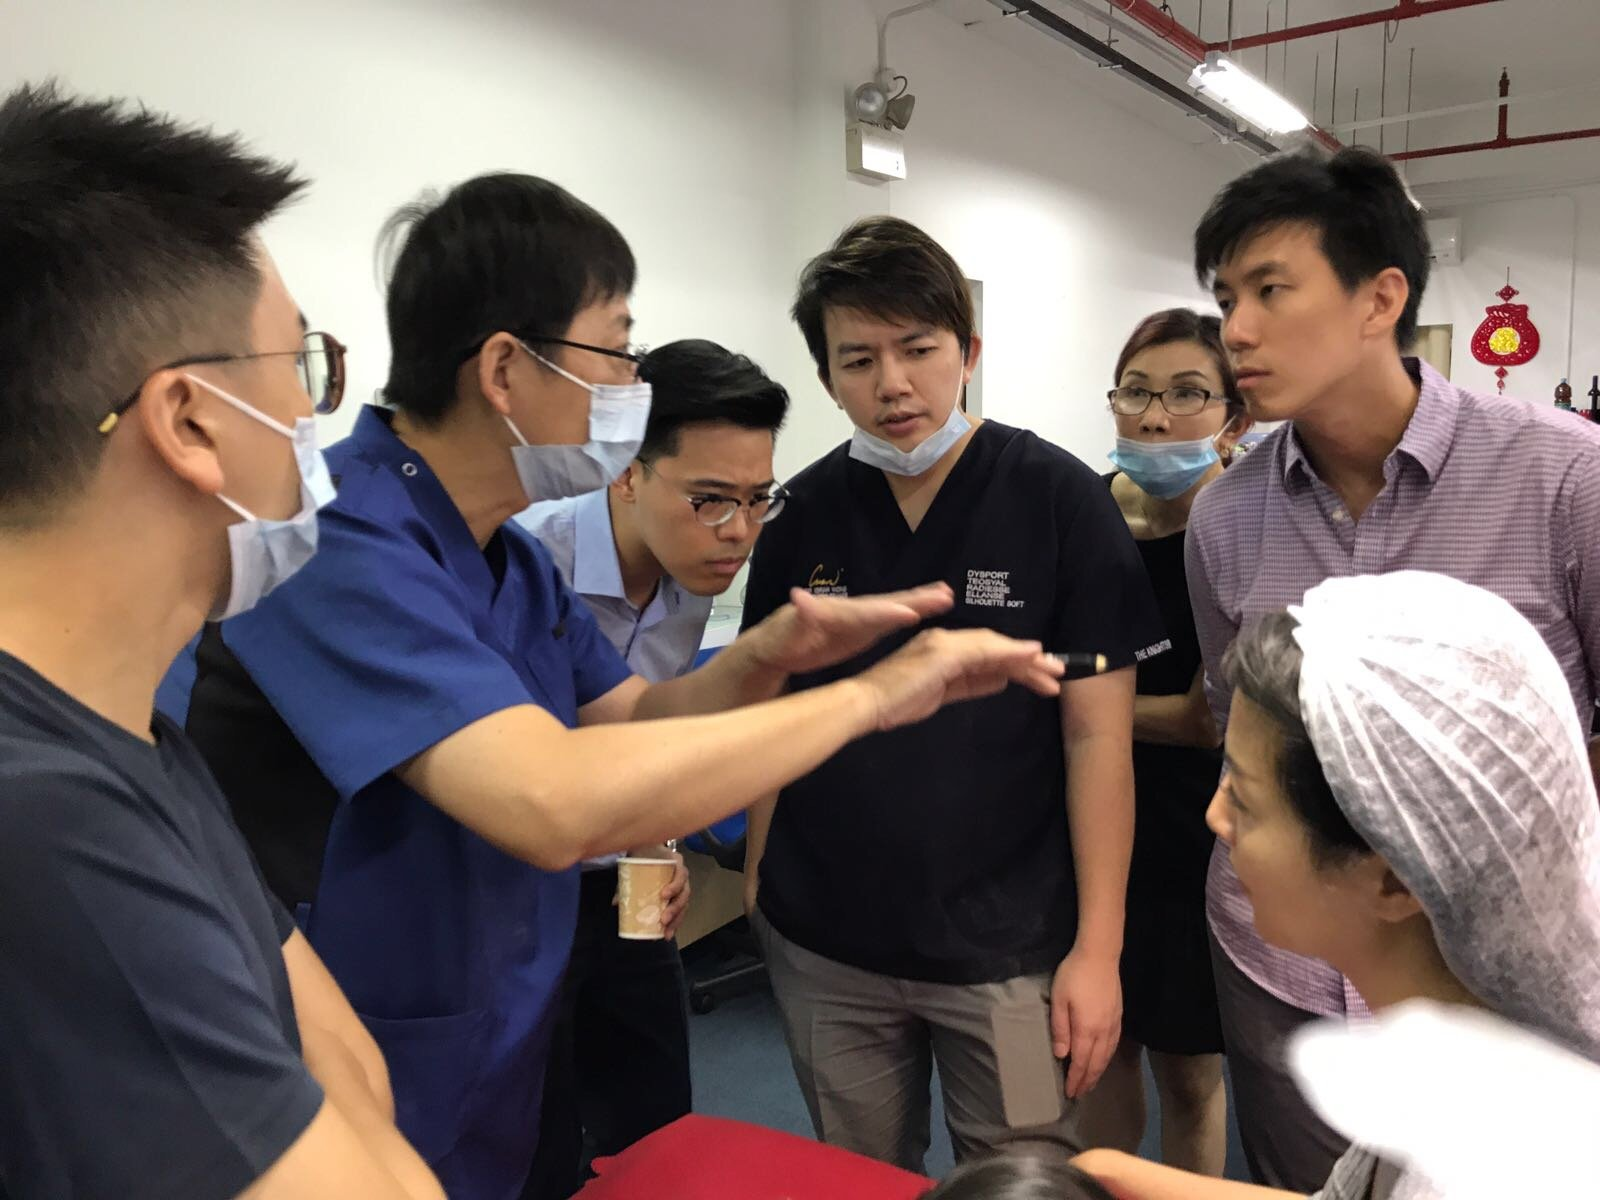 Dr Yang Sung Yu explaining the concept of how to place the threads underneath the skin